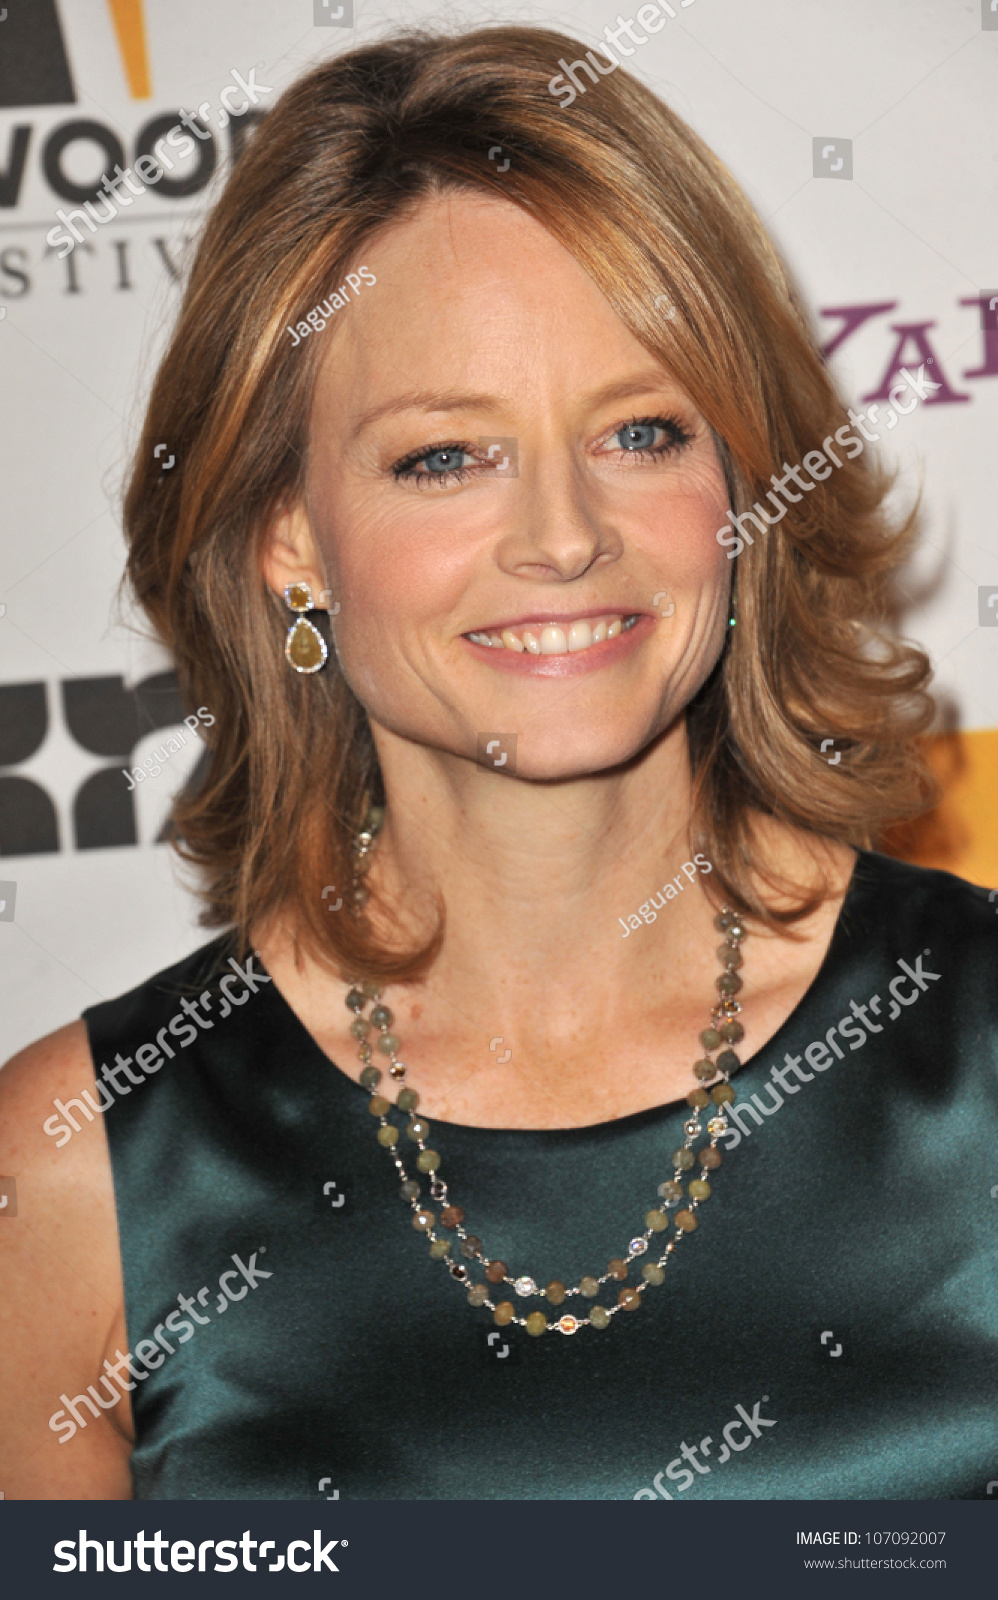 Los Angeles Ca October 25 2010 Jodie Foster At The 14th Annual